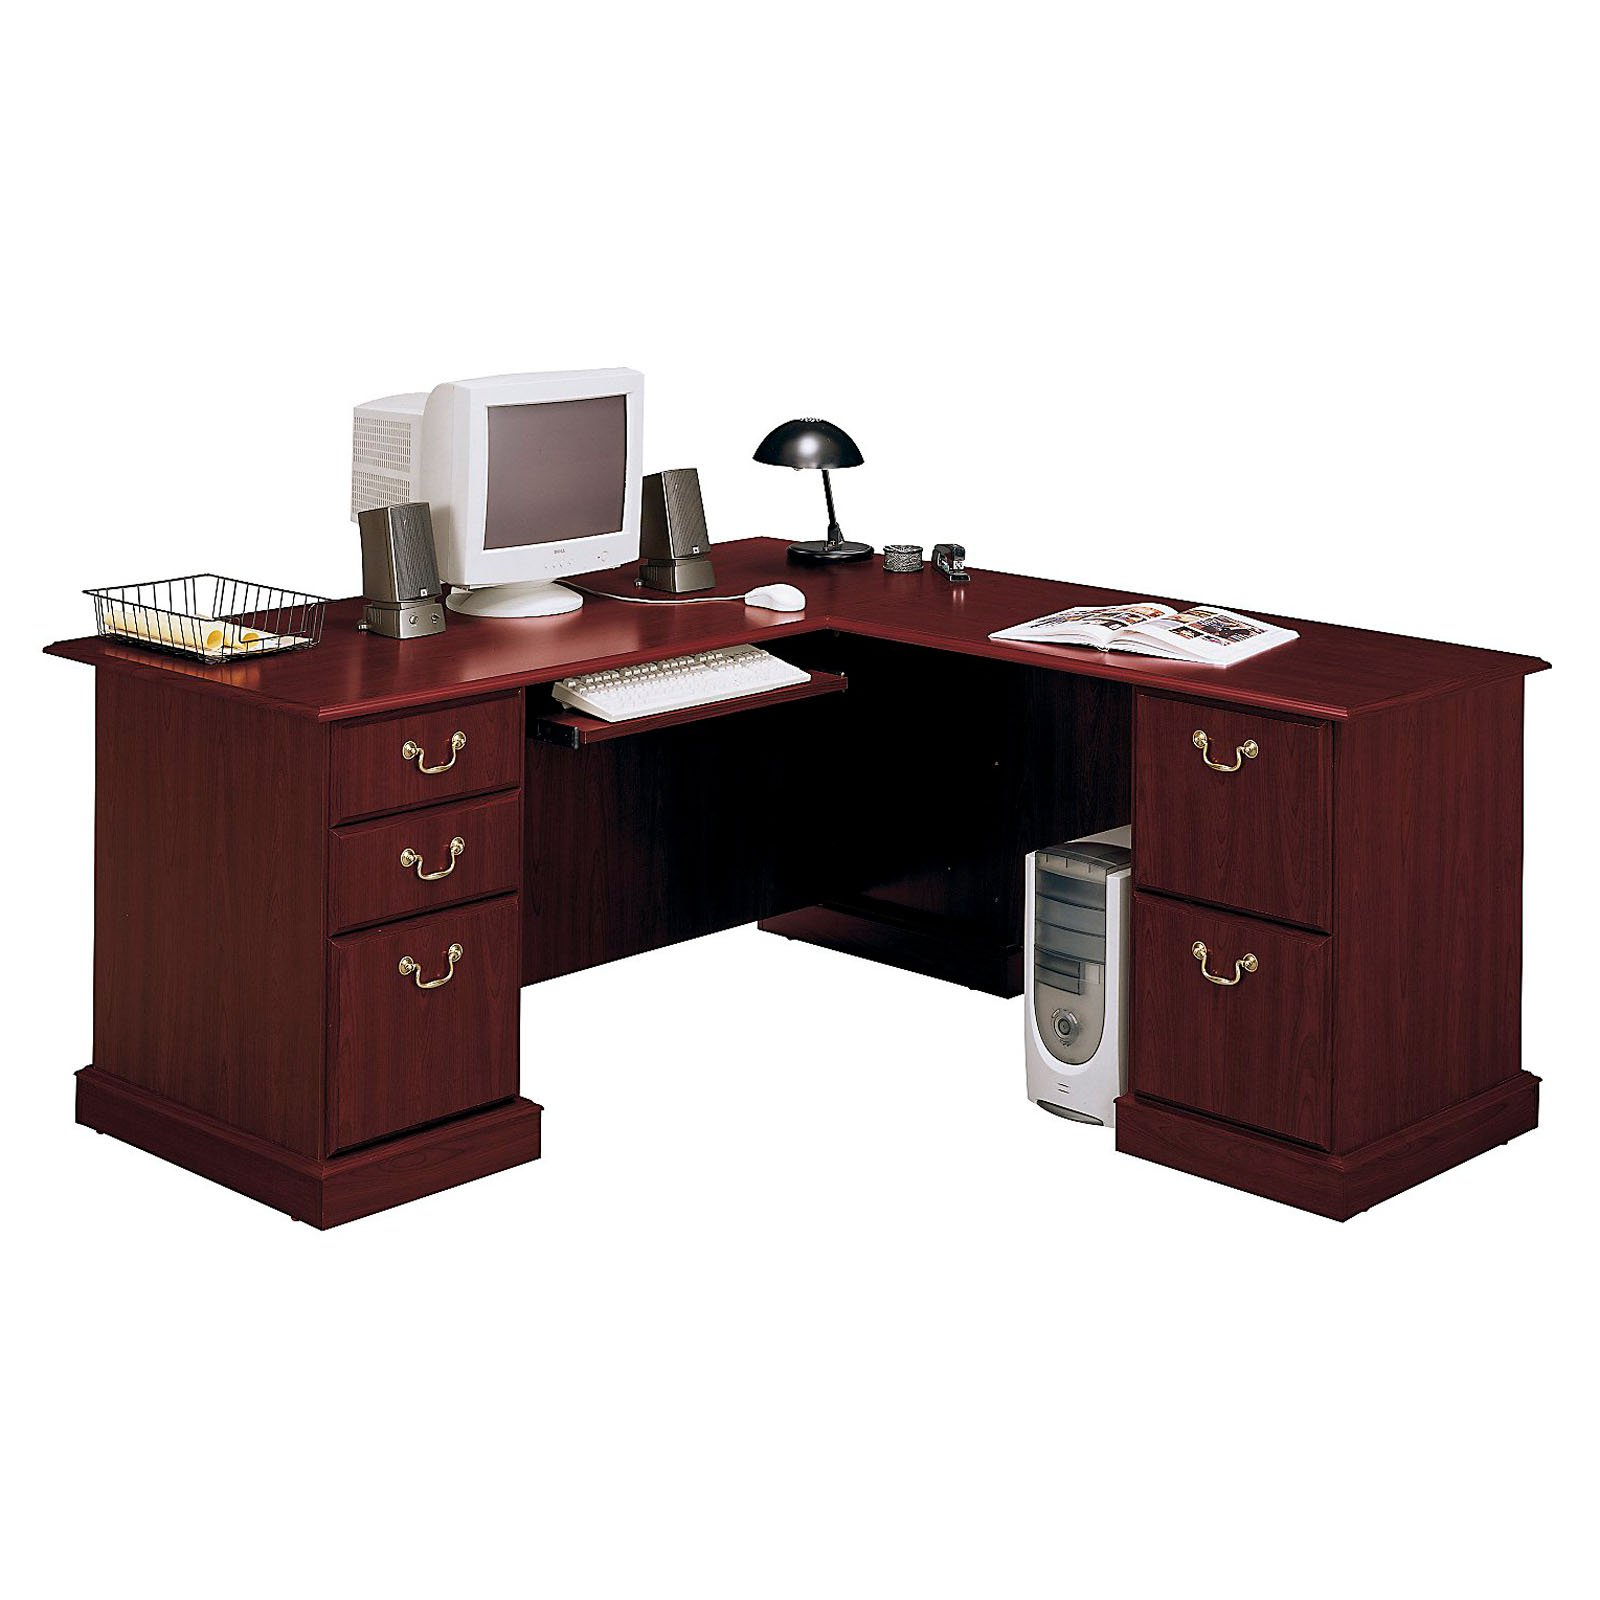 Bush Saratoga L Shaped Computer Desk   Walmart.com